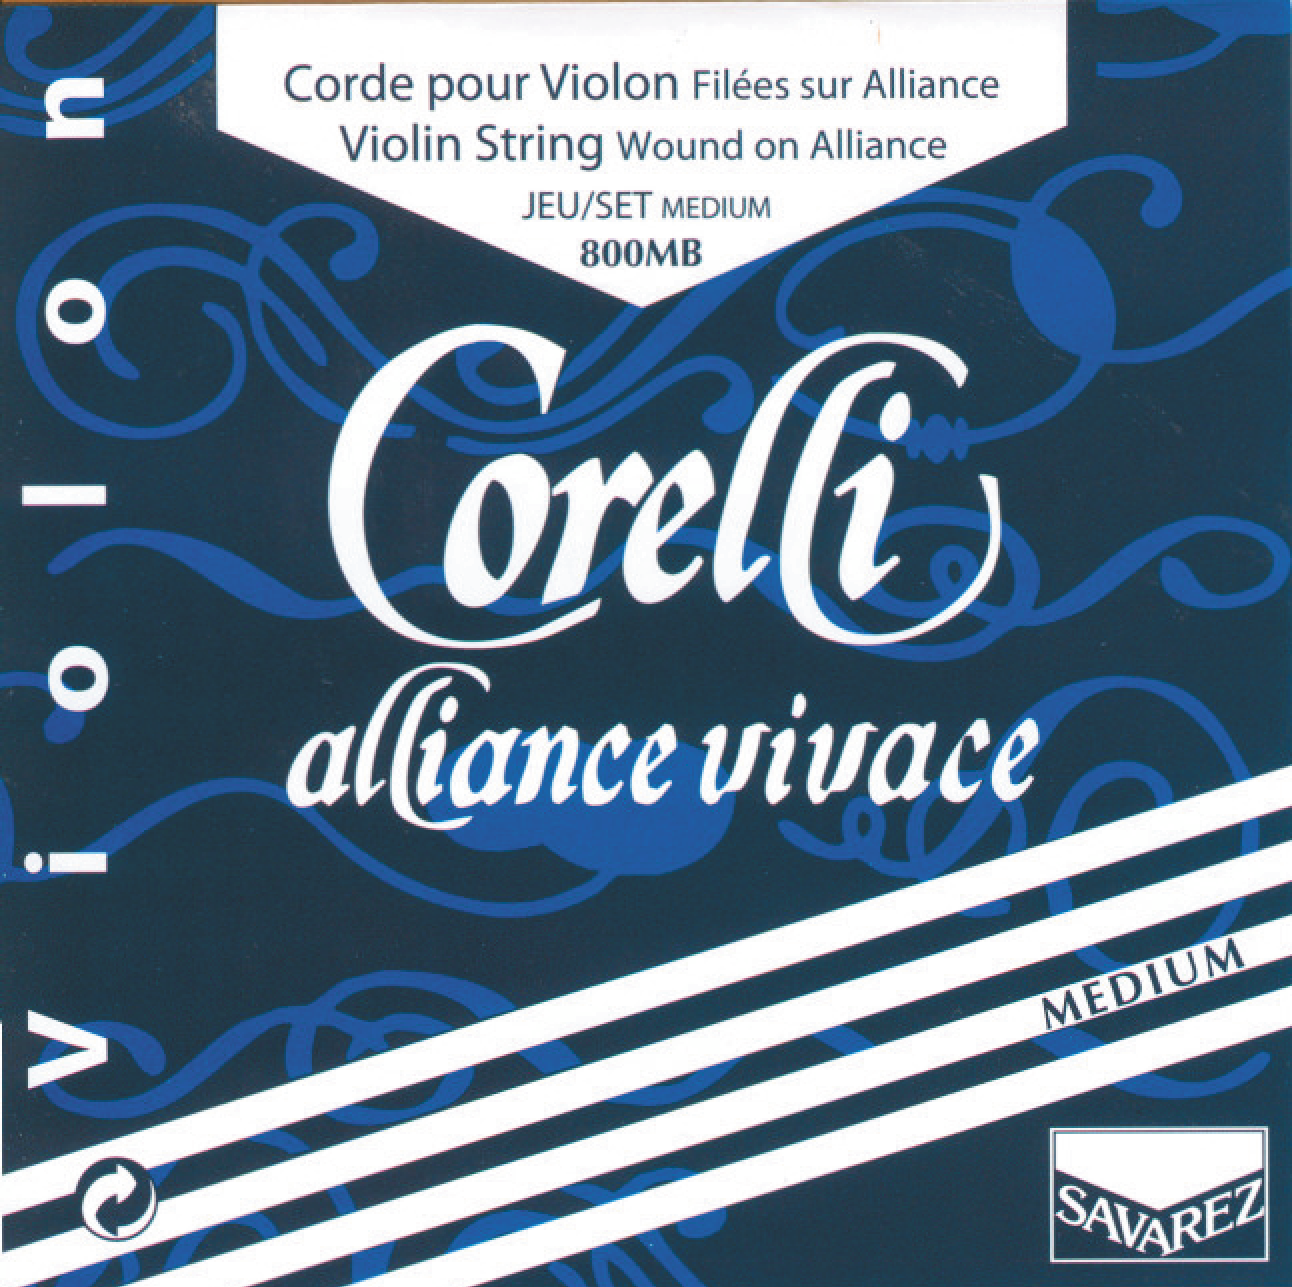 CORELLI ALLIANCE VIVACE MEDIUM 800MB VIOLON